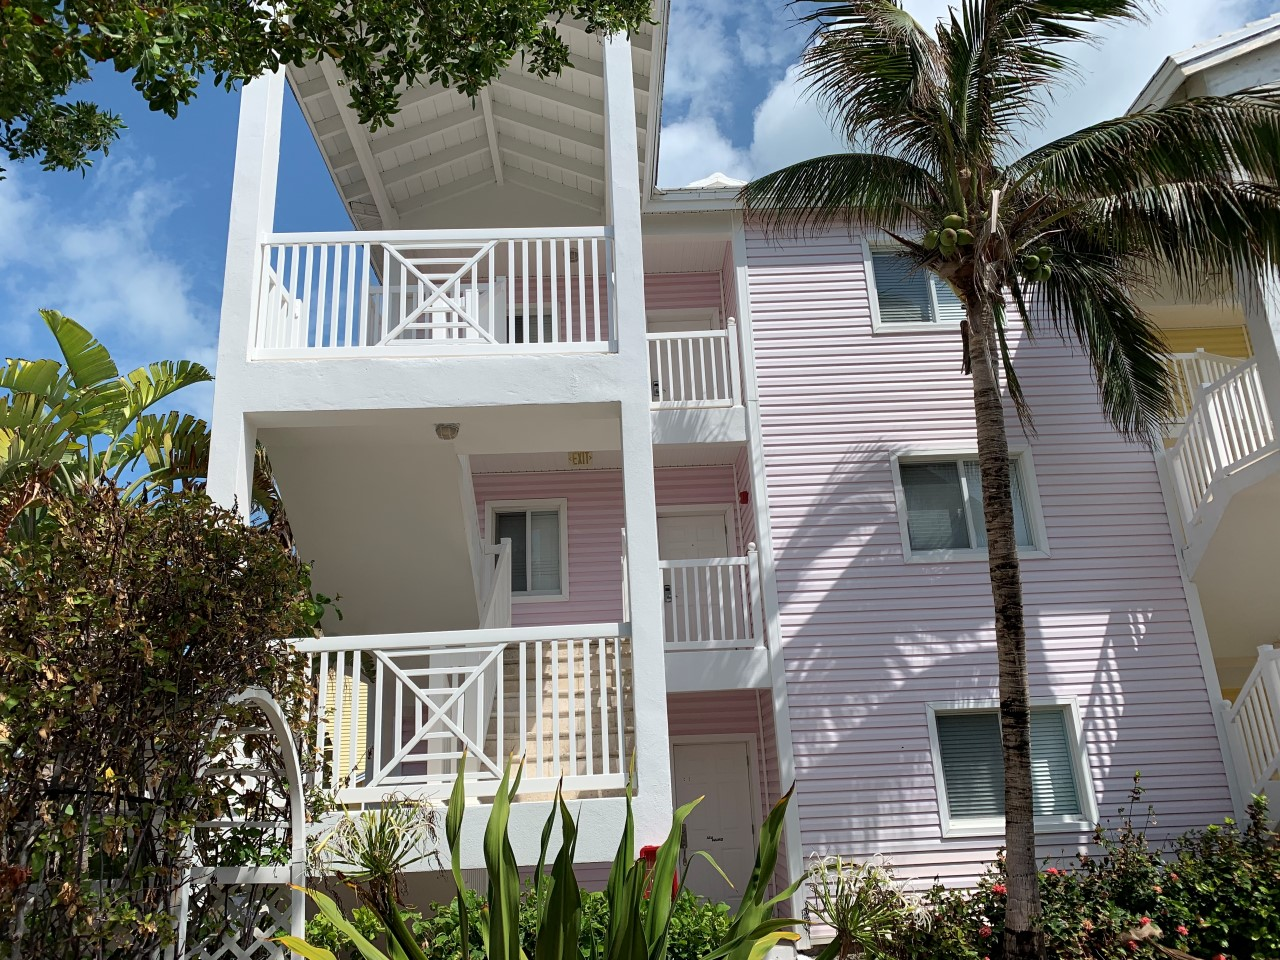 Bimini Bay Vacation Condo